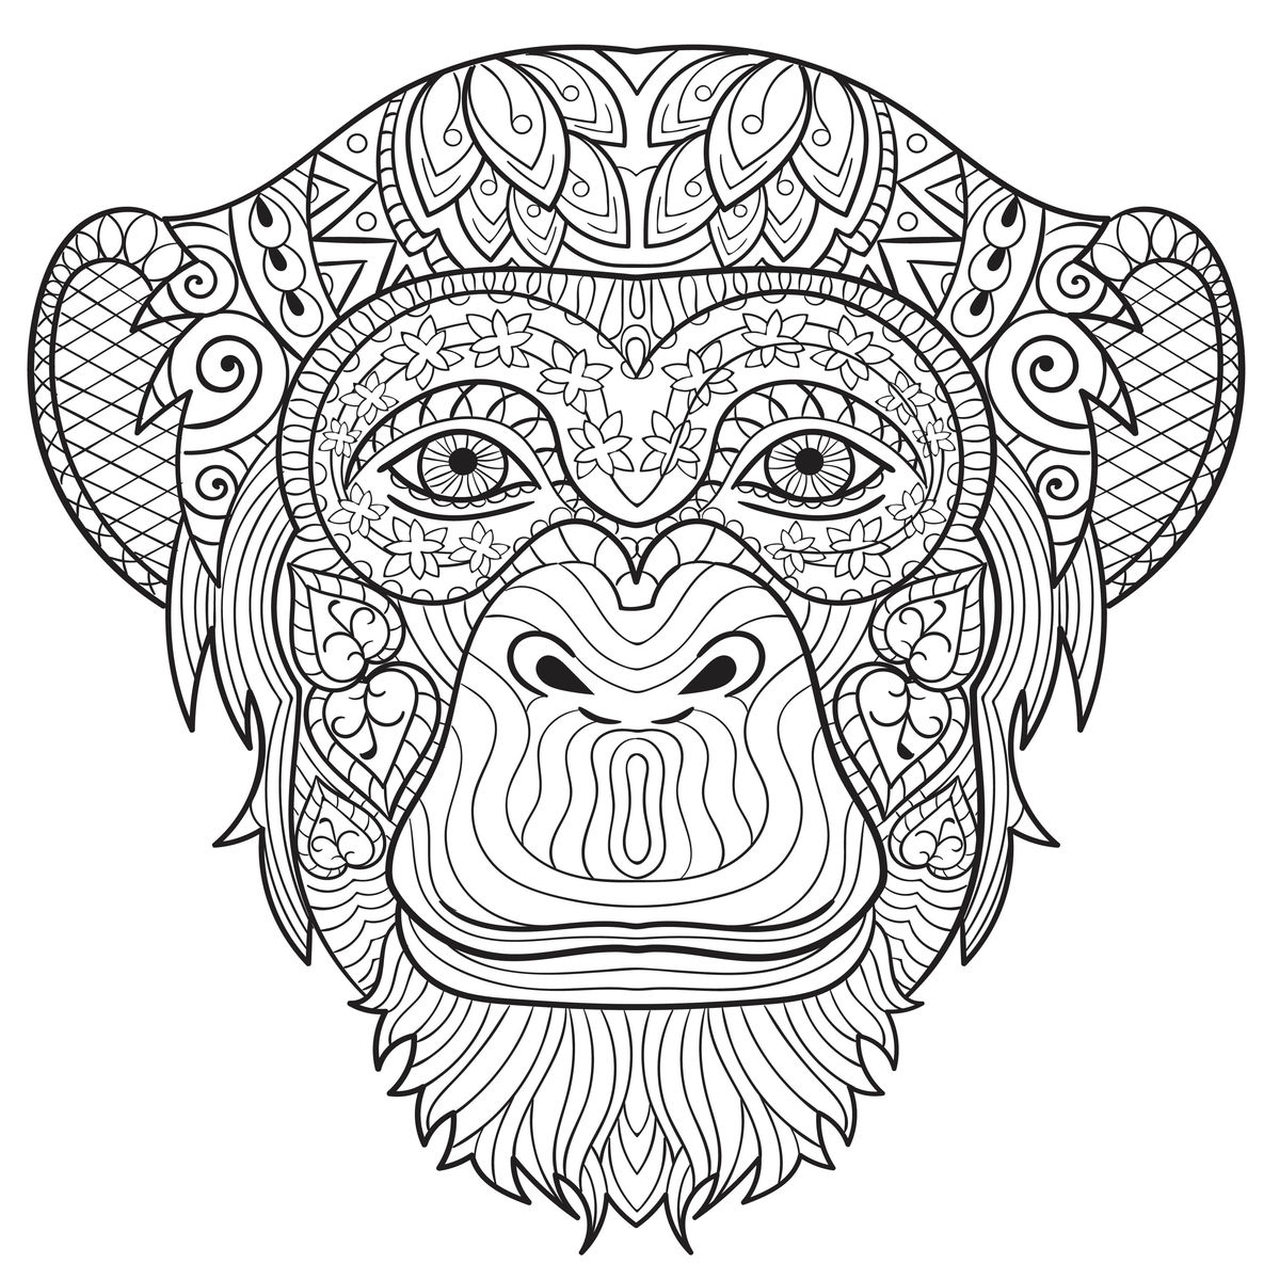 1280x1280 Monkey Colouring Pages For Adults Printable To Good Coloring Image